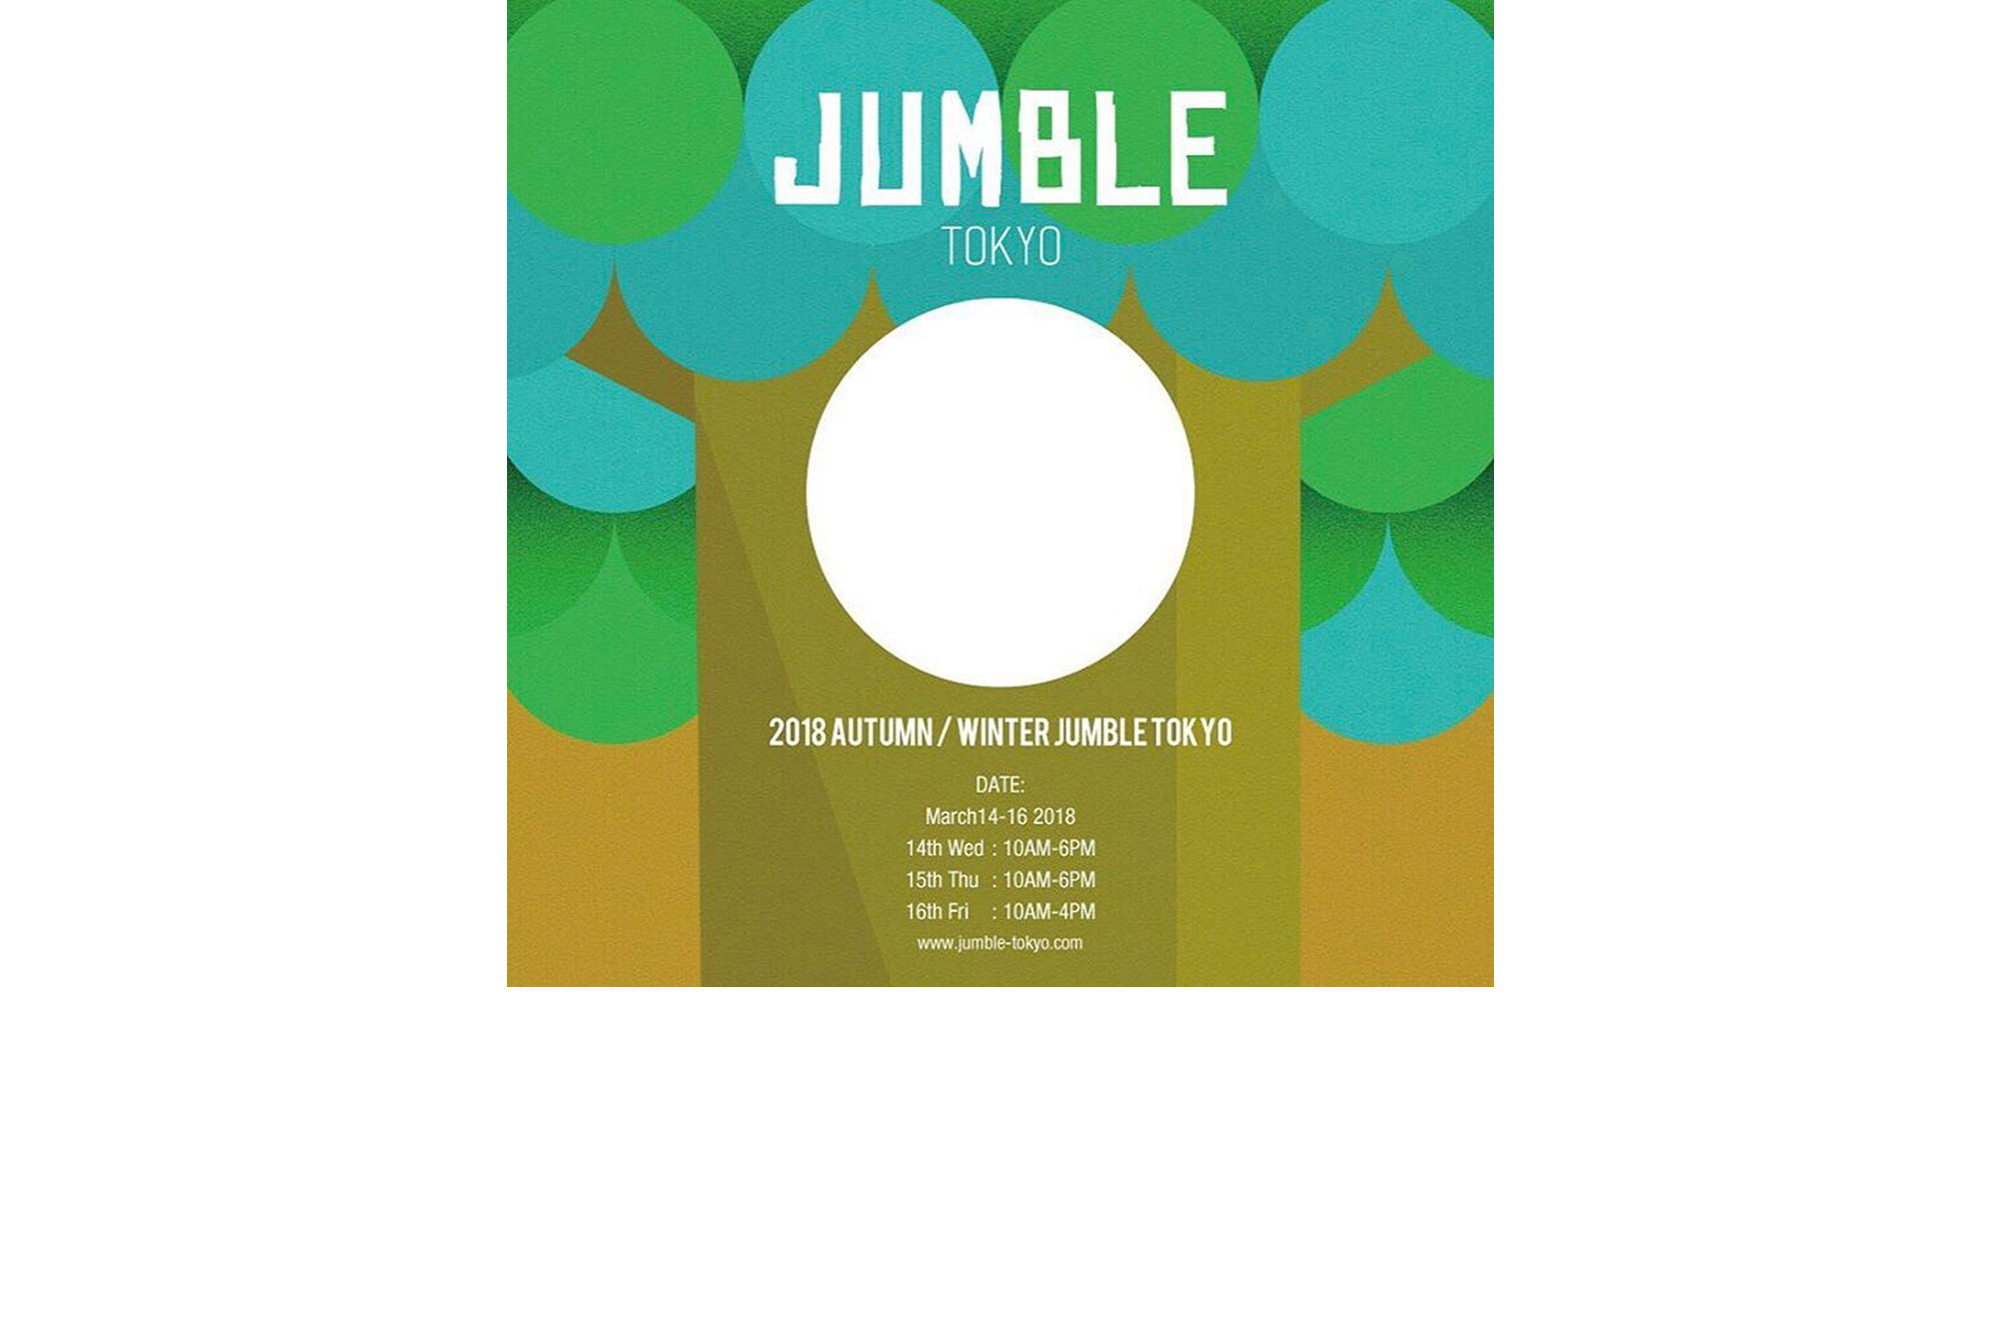 Join to the Jumble-tokyo.